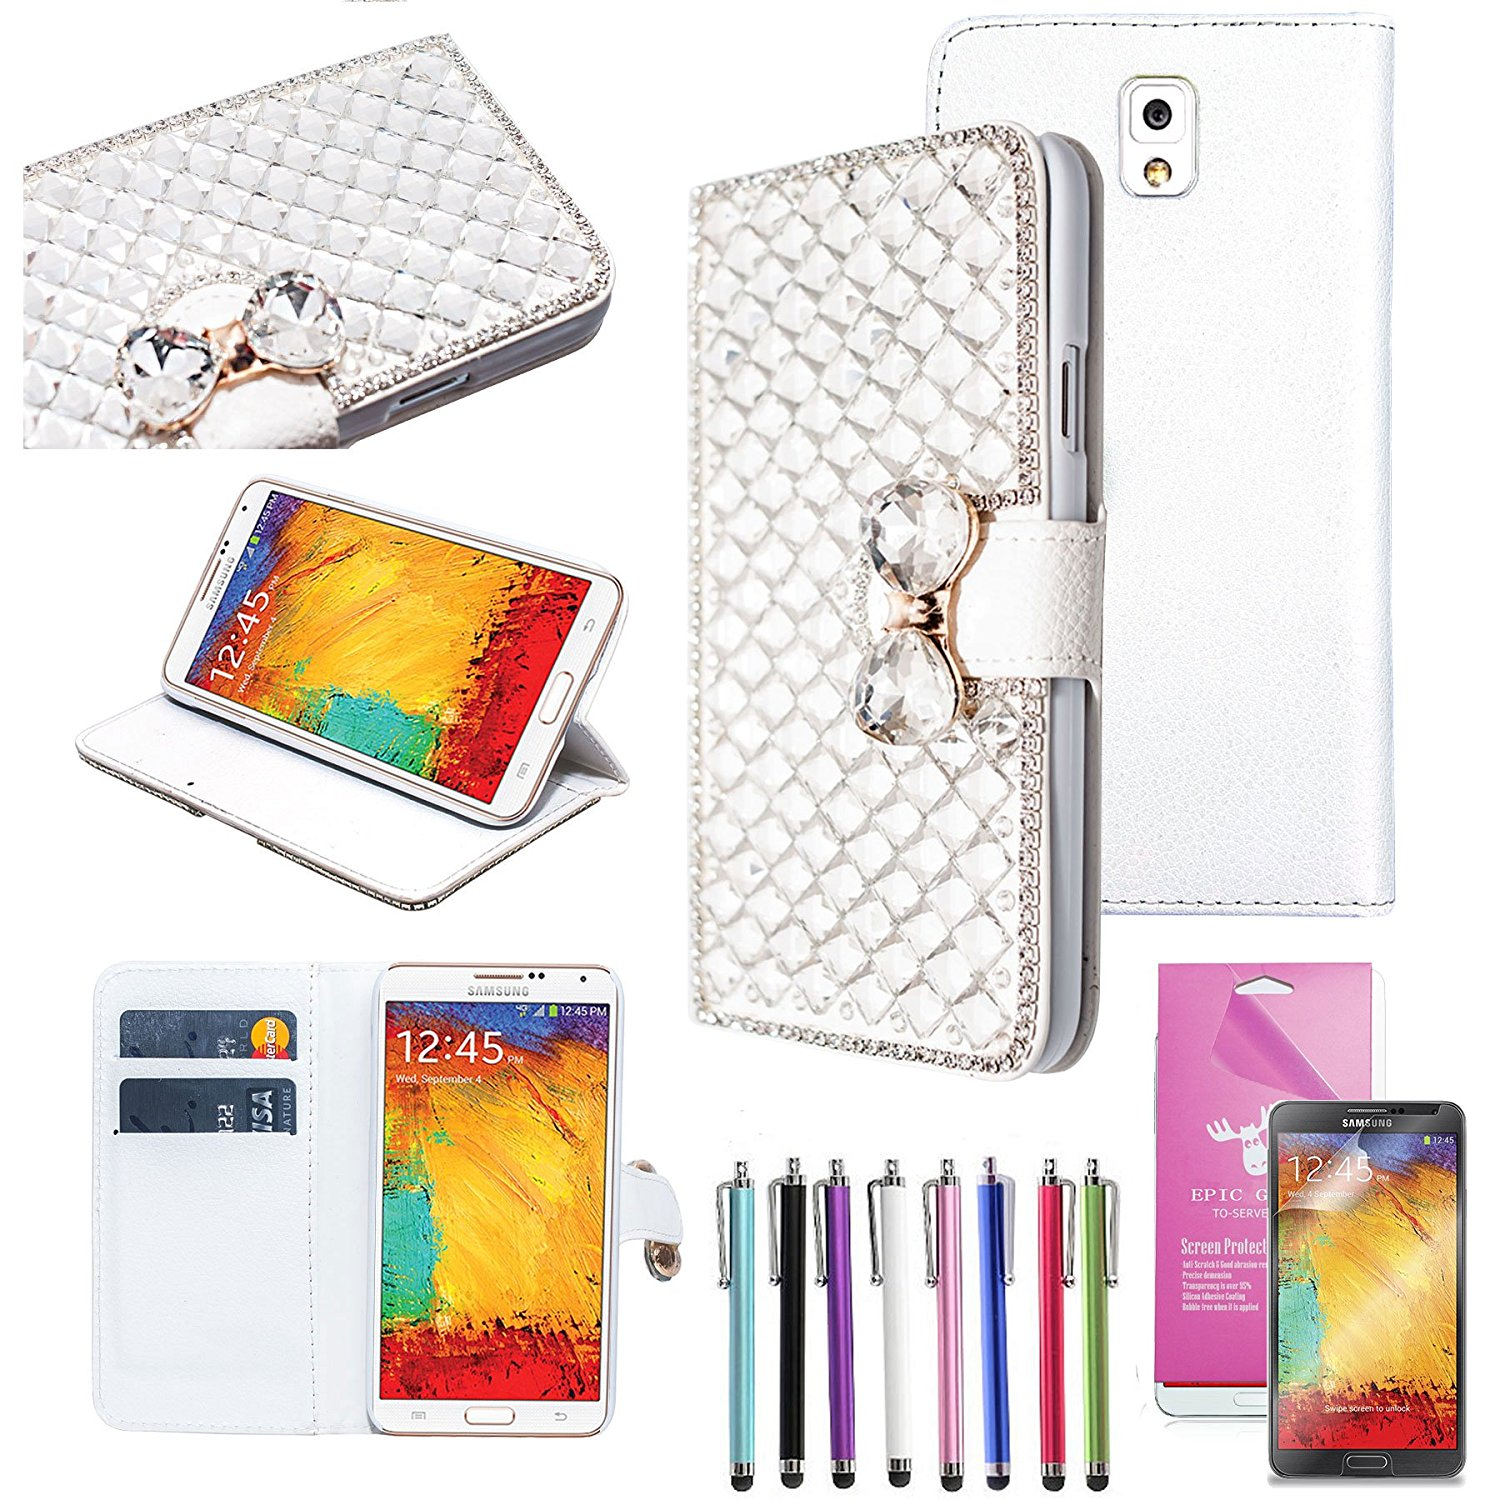 EpicGadget(TM) For Samsung Galaxy Note 3 Handmade Luxury Silver Crystal Bling Bling White PU Leather Case With Crystal Bow Knot Wallet Case Magnet Flip Cover With Credit Card Holder Pouch + Note 3 N9000 Screen Protector + 1 Stylus Pen (Random Color) (US Seller!!) (Silver)